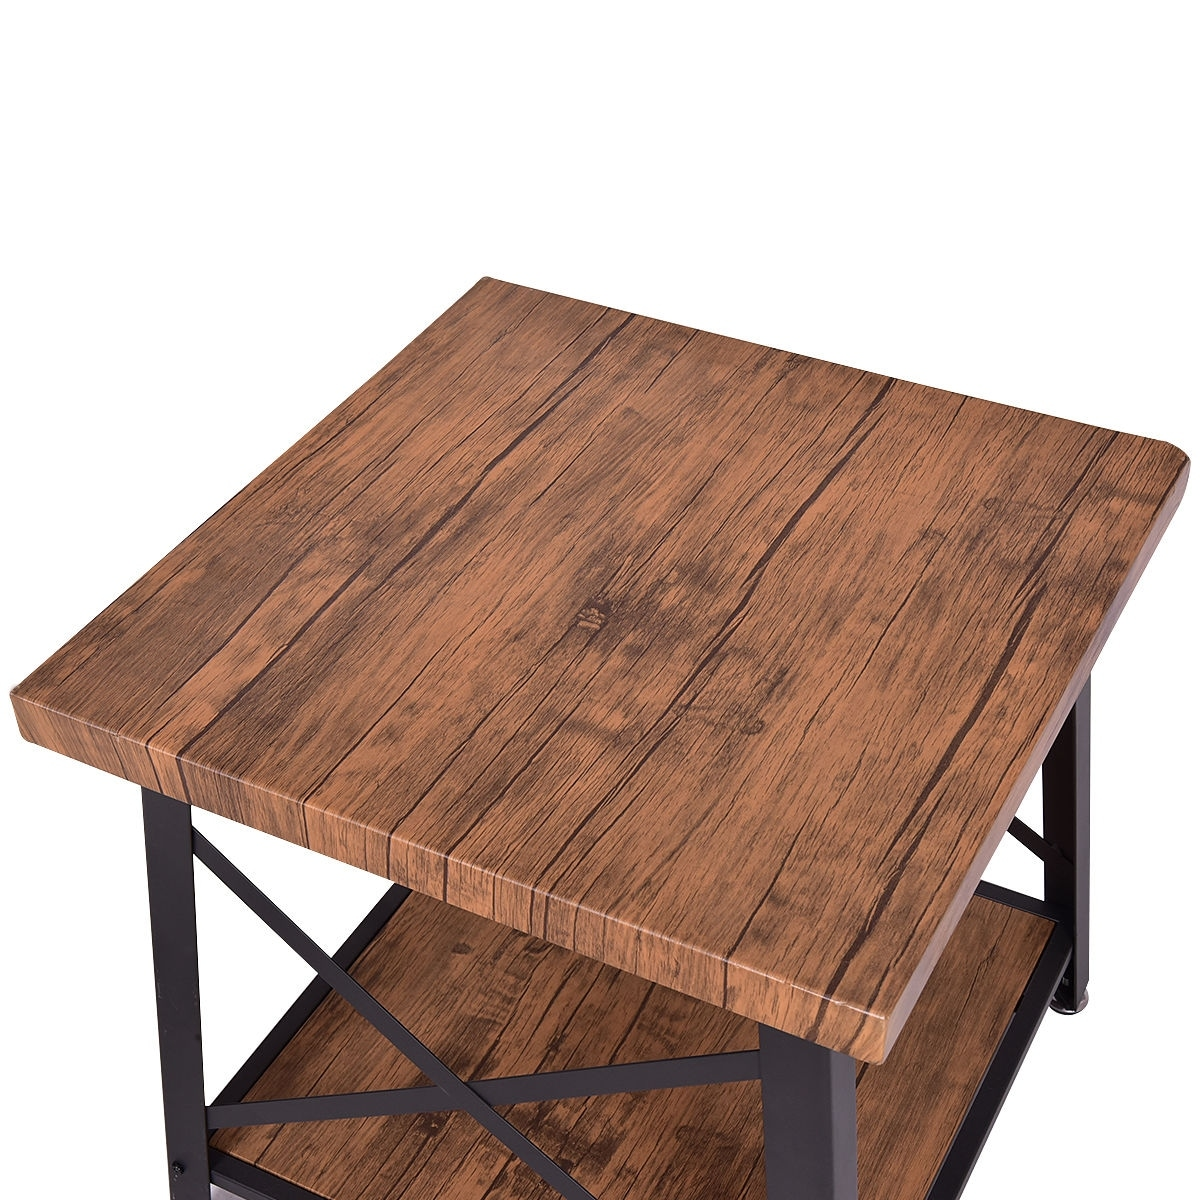 Merveilleux Shop Costway Square Coffee Table Cocktail End Table Metal Frame Wood Top W/  Storage Shelf New   Free Shipping Today   Overstock.com   18522323